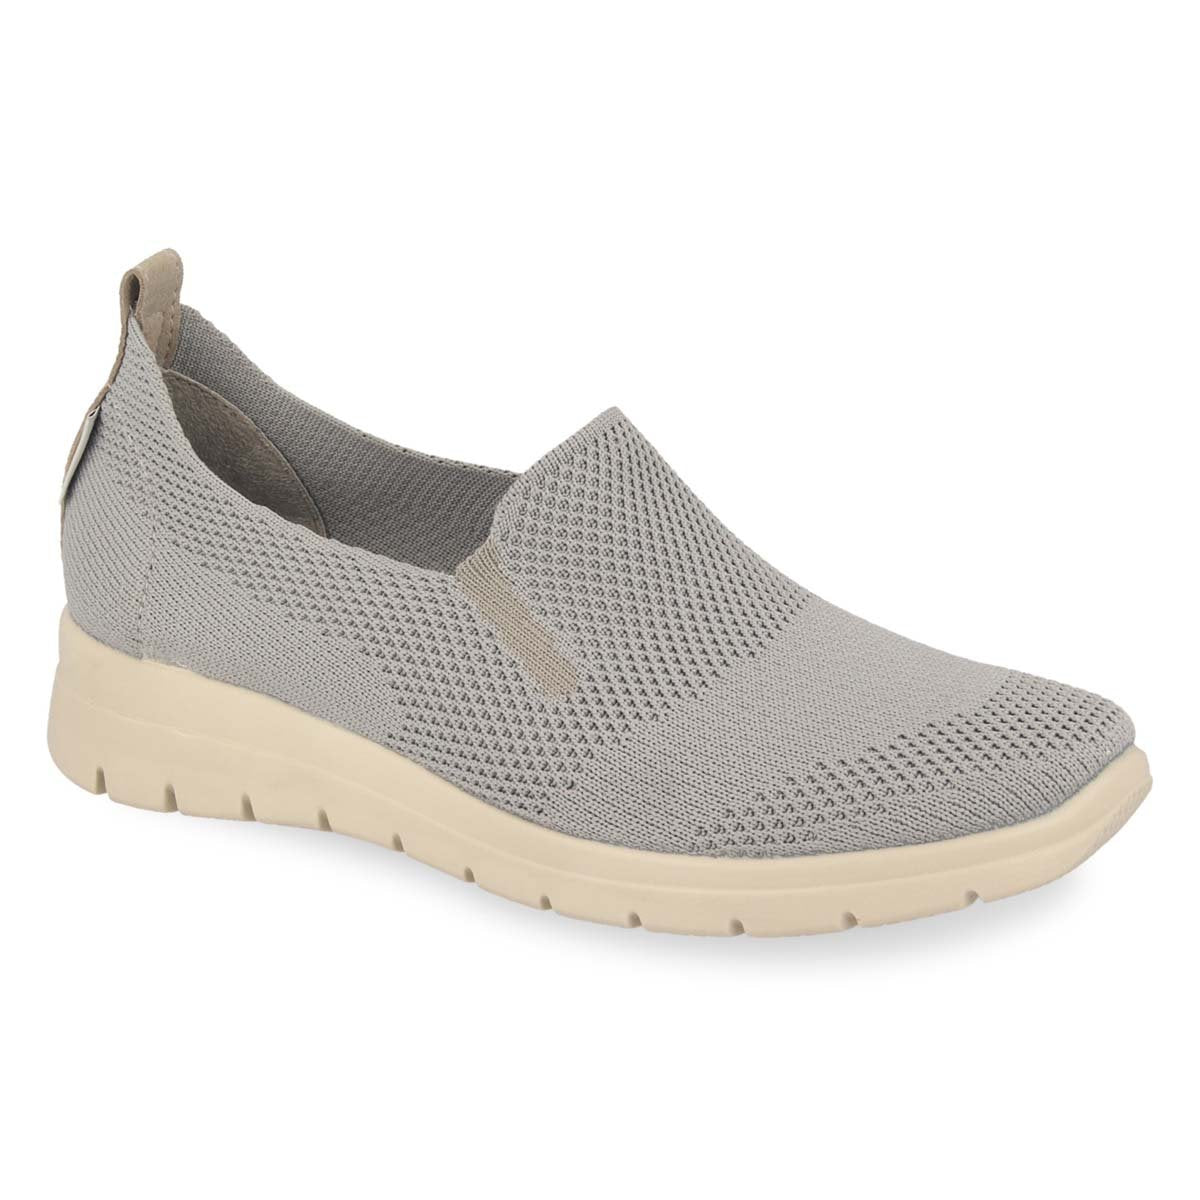 Photo of the Cloth Woman Shoe Grey (27d38kq)